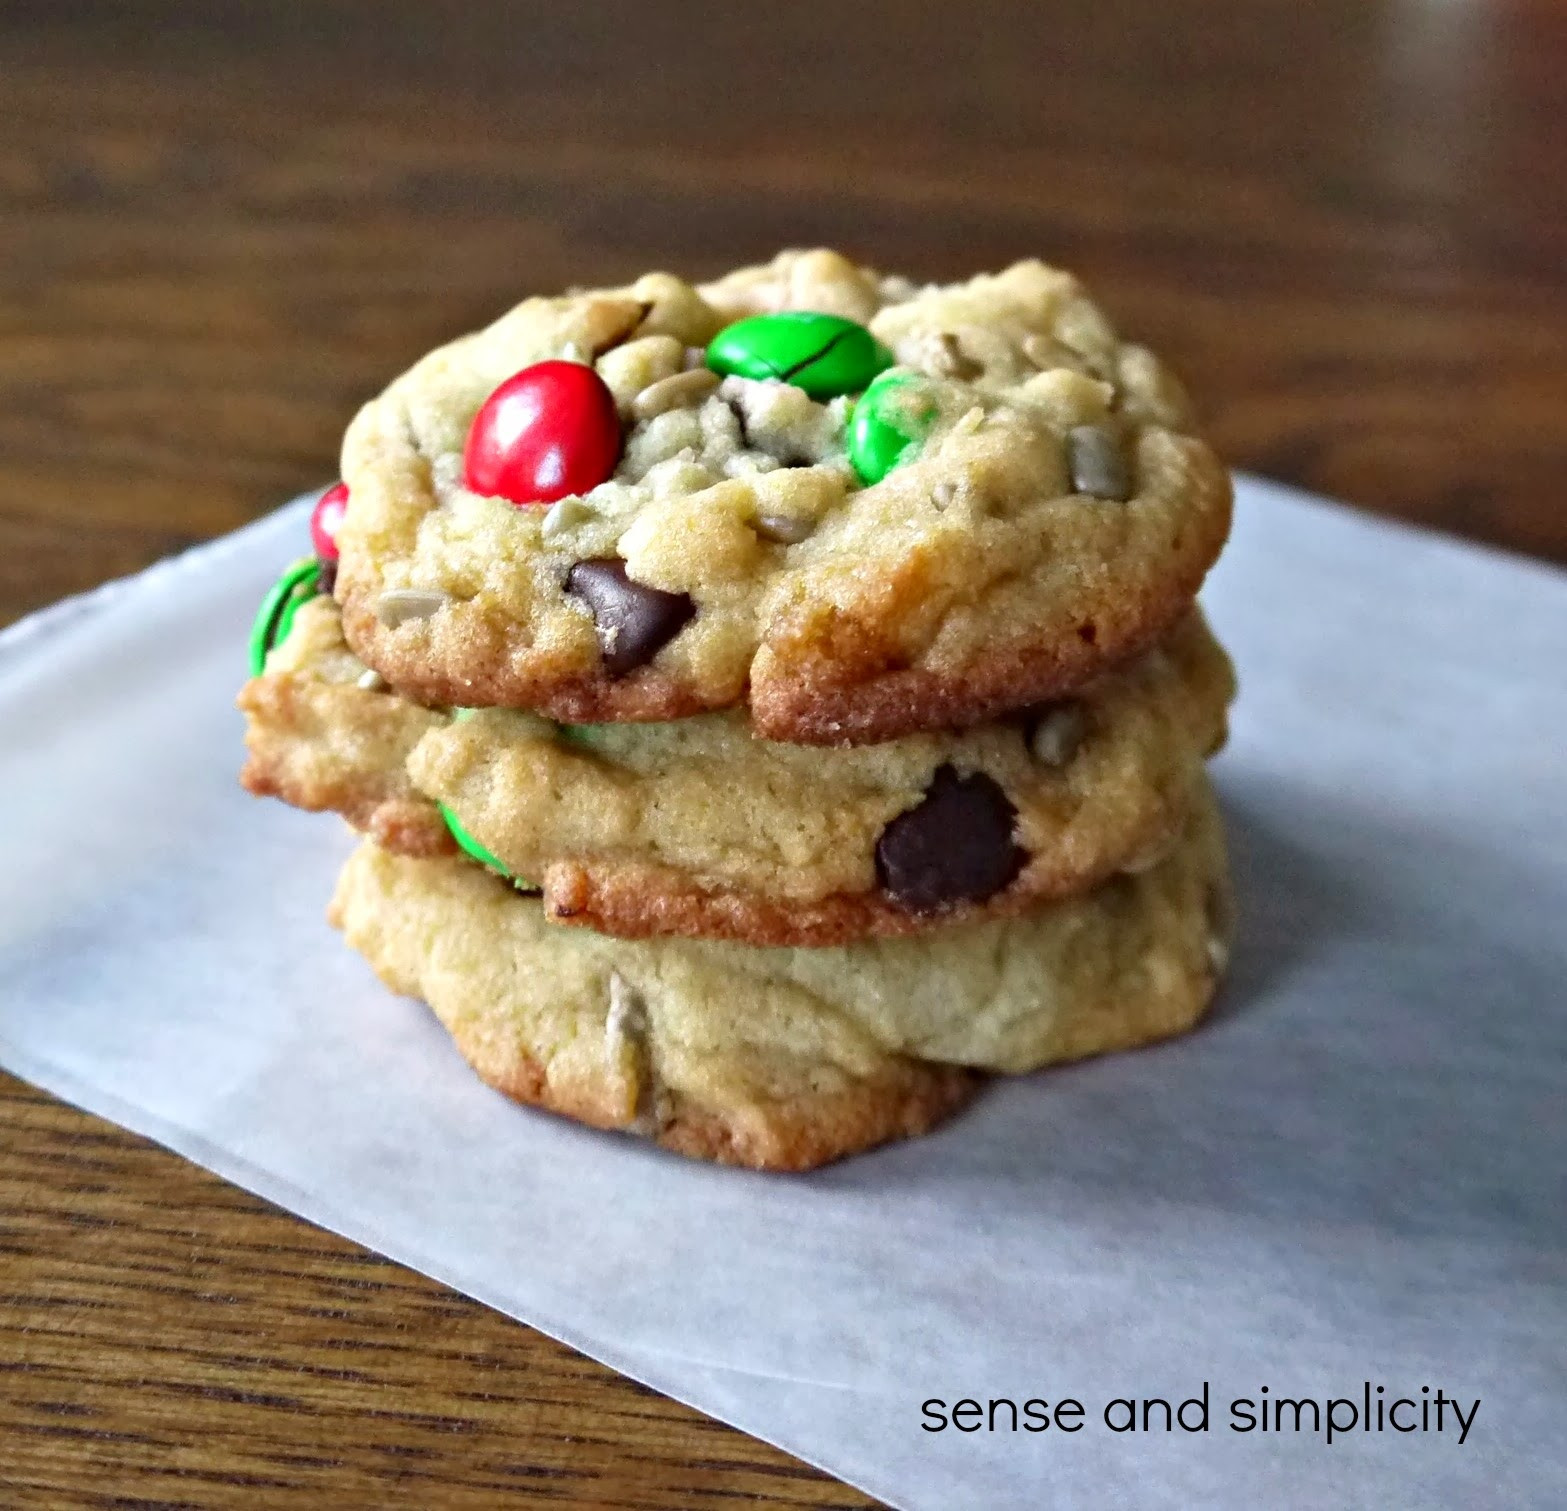 Chocolate Chip Christmas Cookies  Sense and Simplicity Christmas Cookie Week M&M